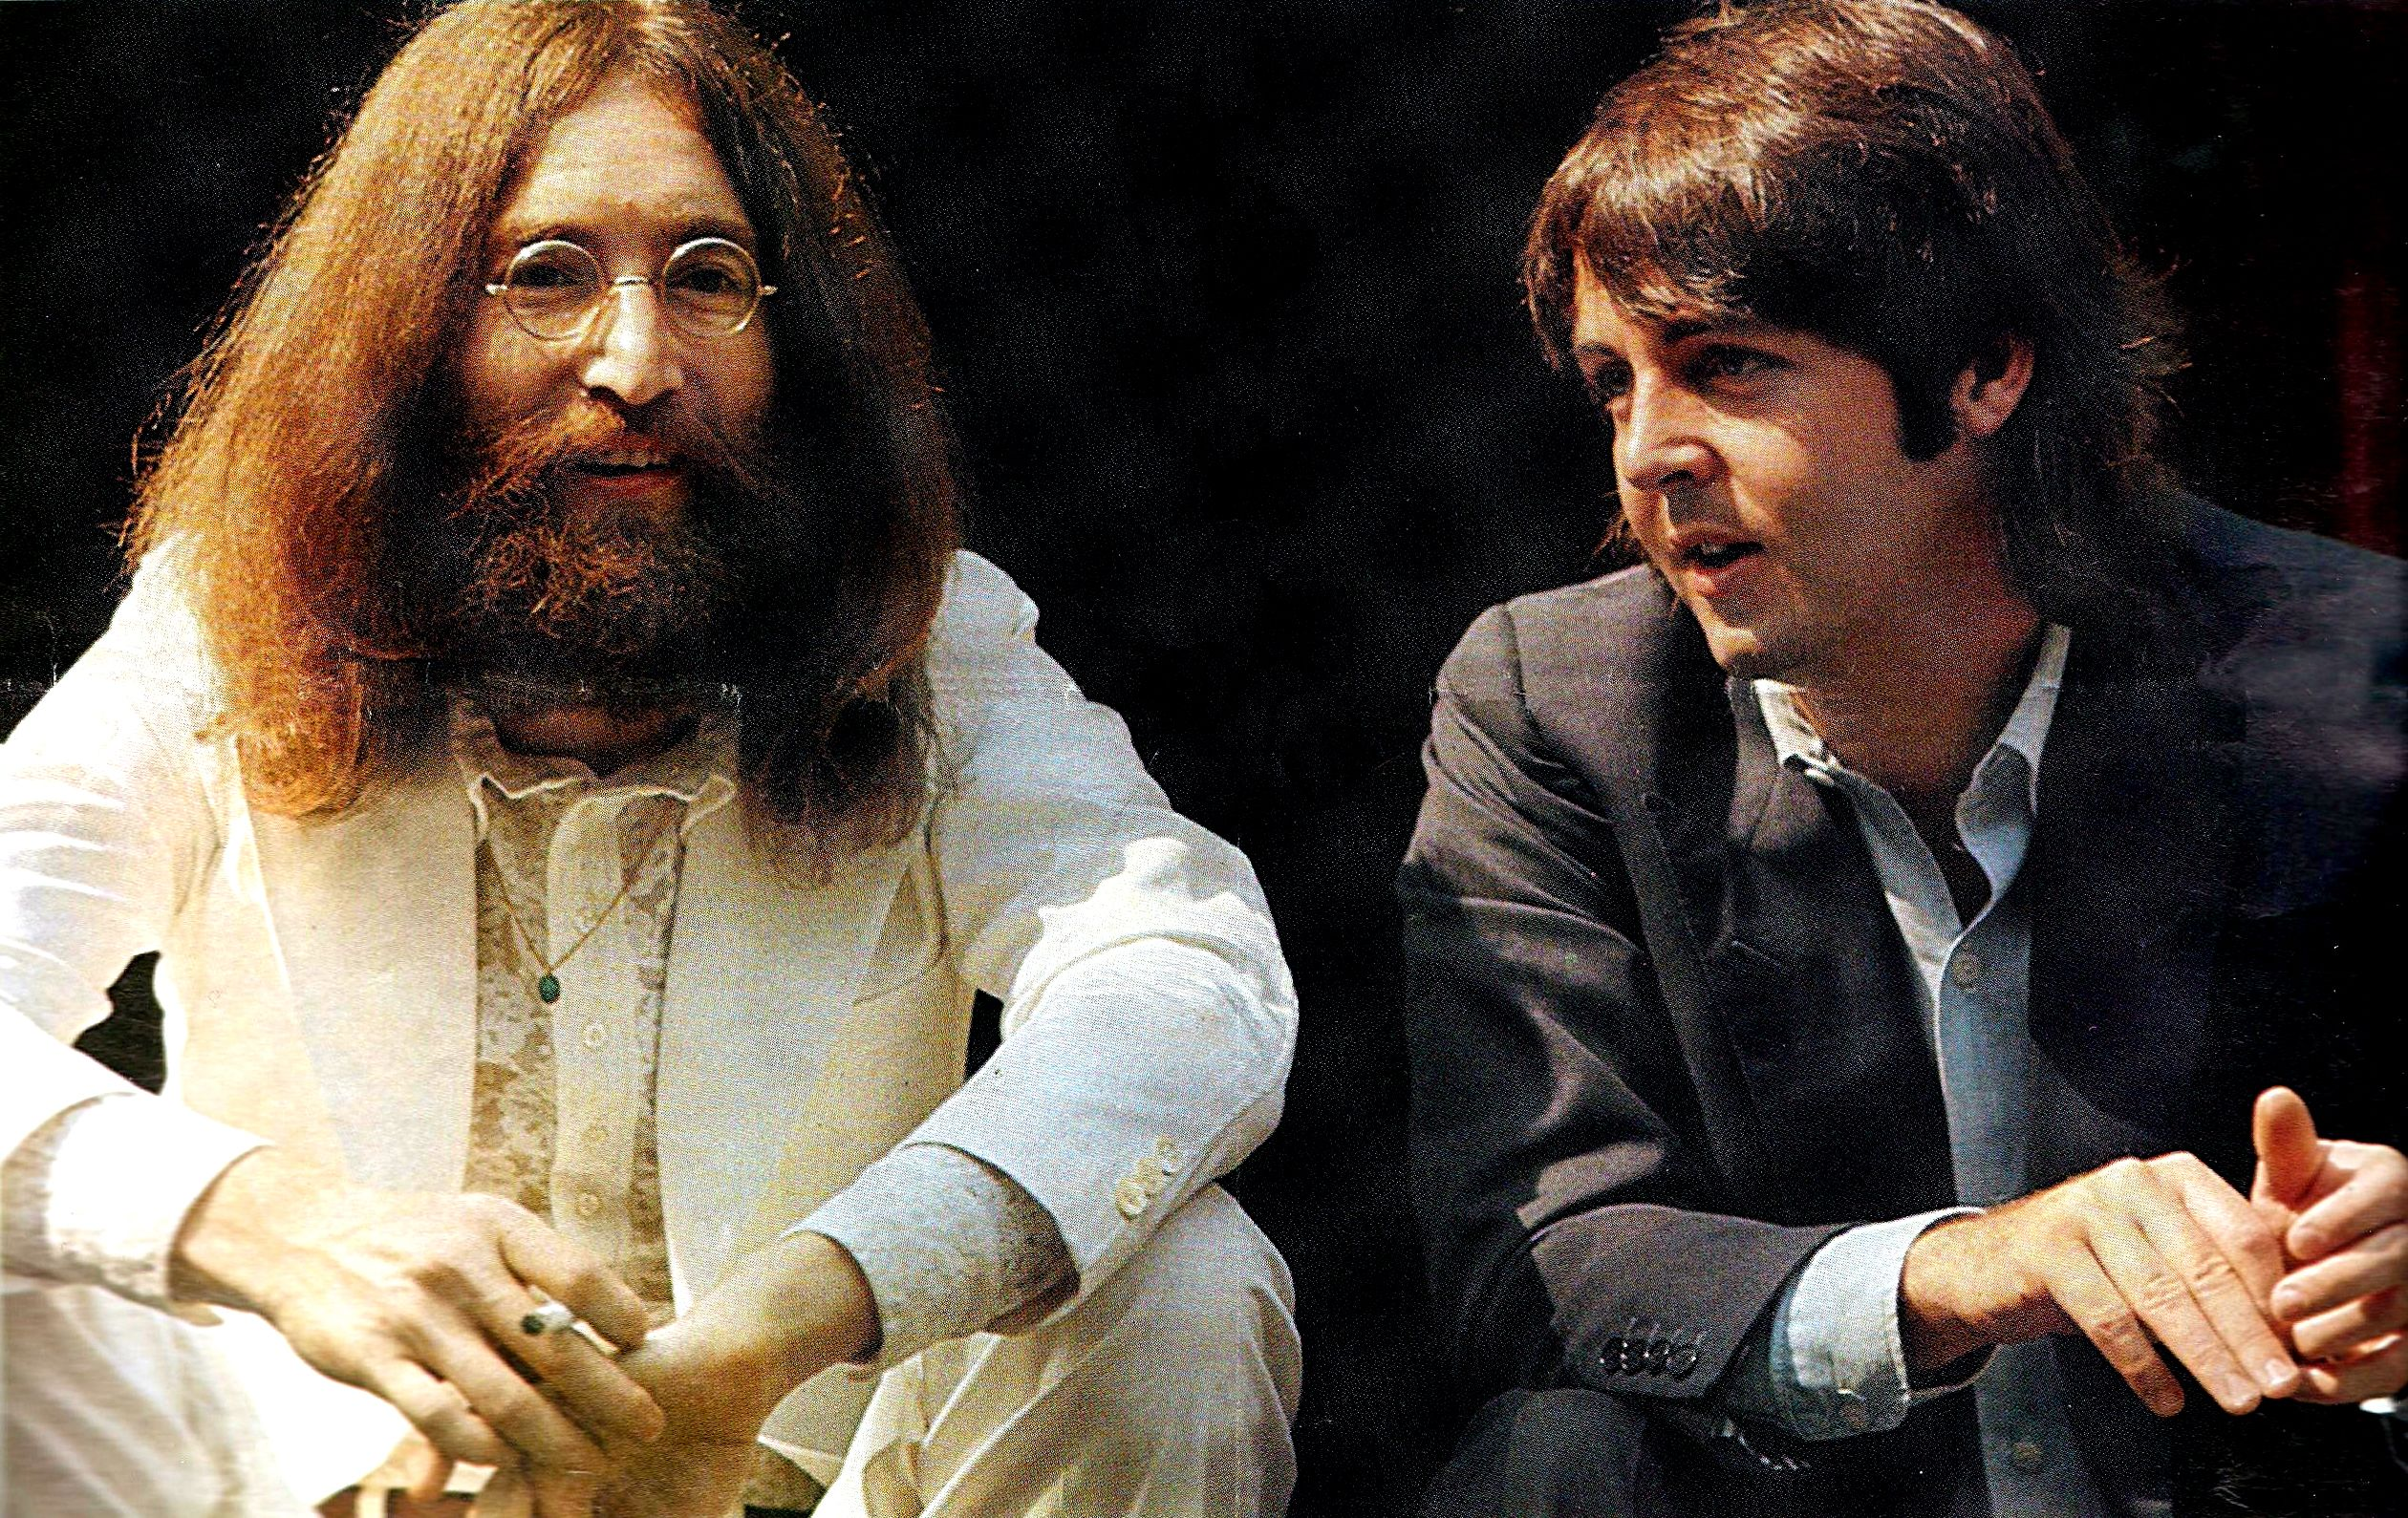 ãjohn lennon and paul mccartney 1969ãã®ç»åæ¤ç´¢çµæ